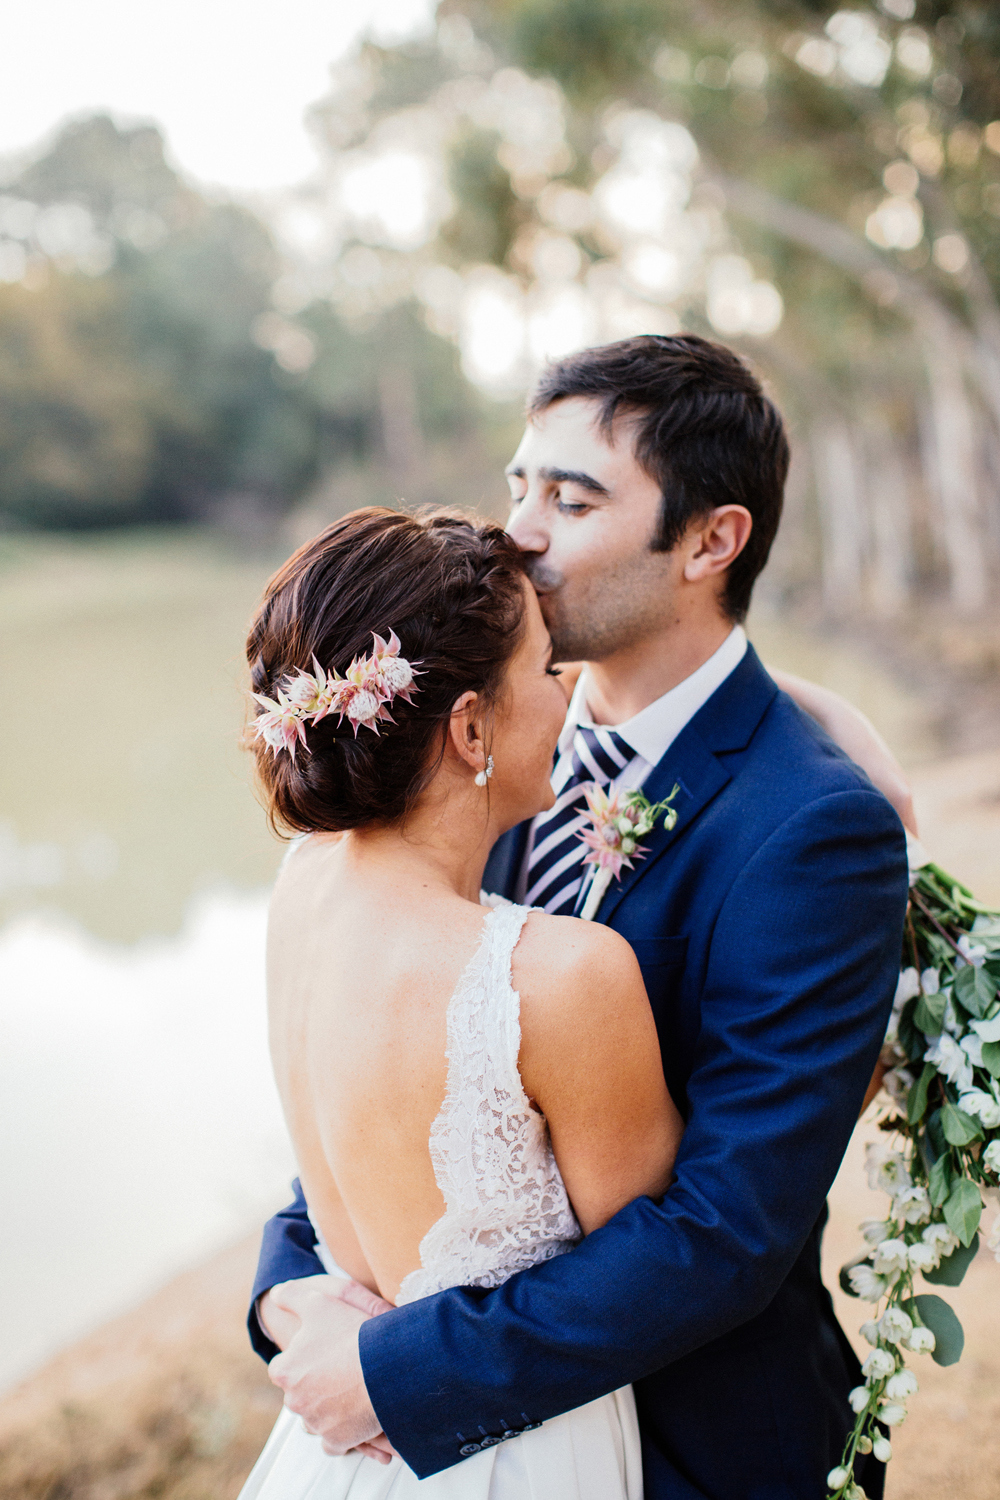 Pretty Rustic Wedding with a Touch of Delft   Images: Marli Koen